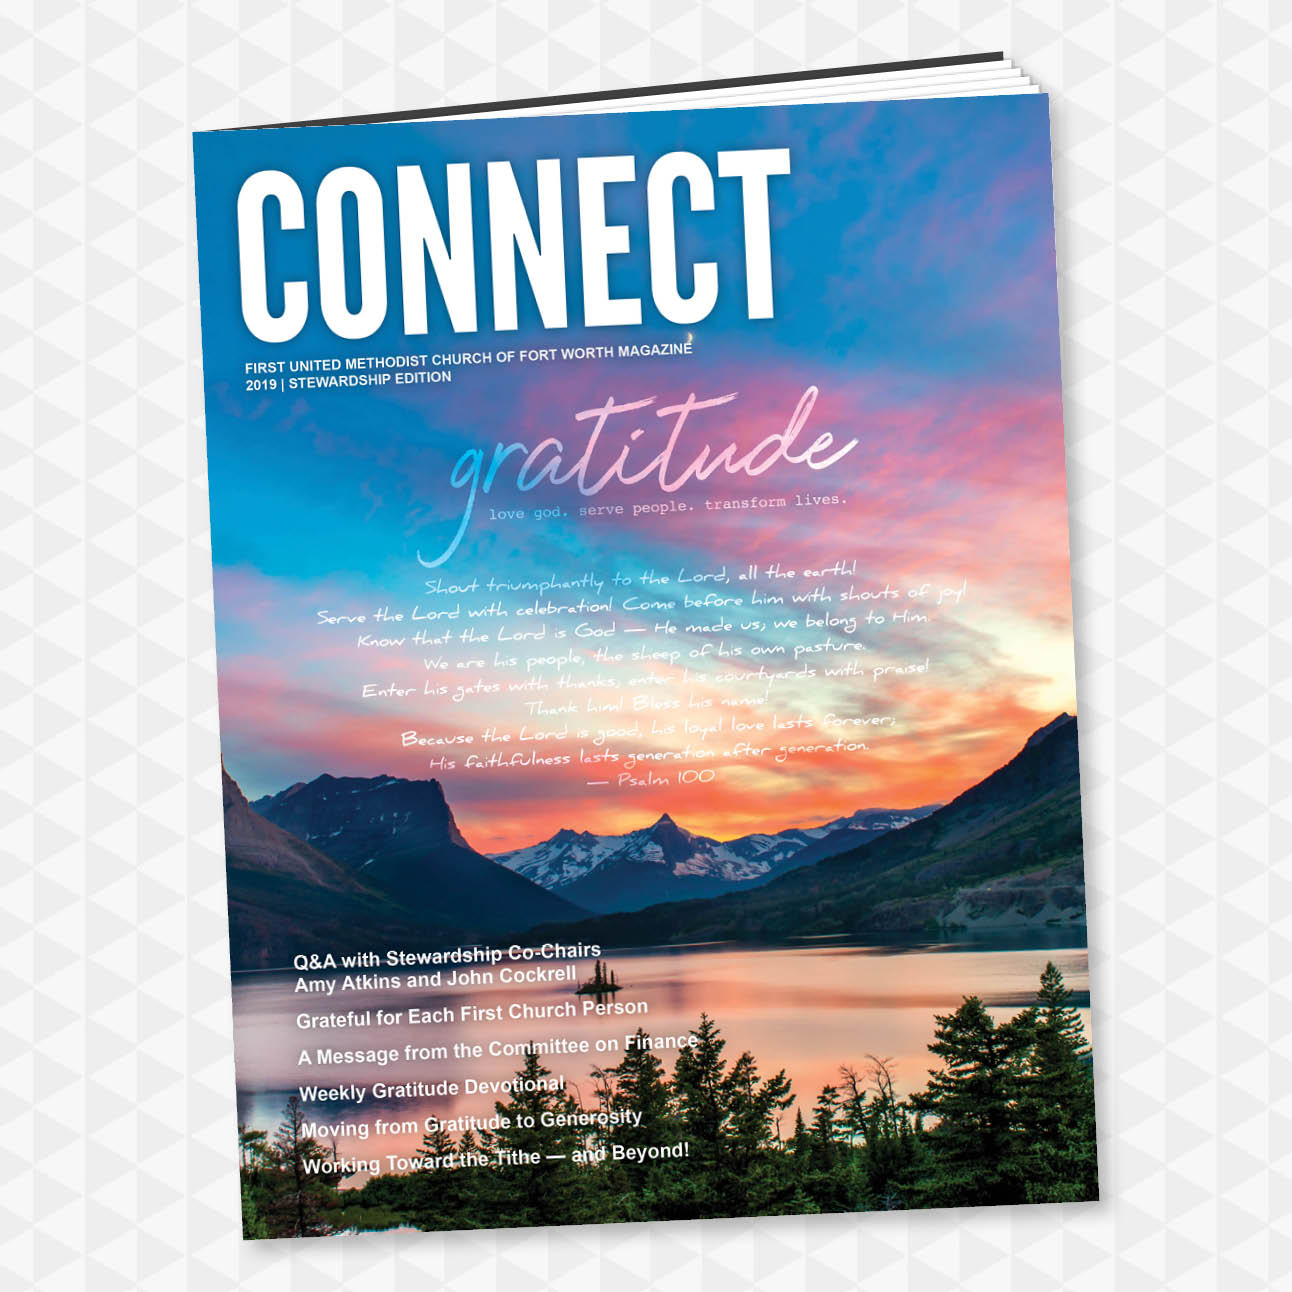 CONNECT Magazine 2019 | Stewardship Edition is here!